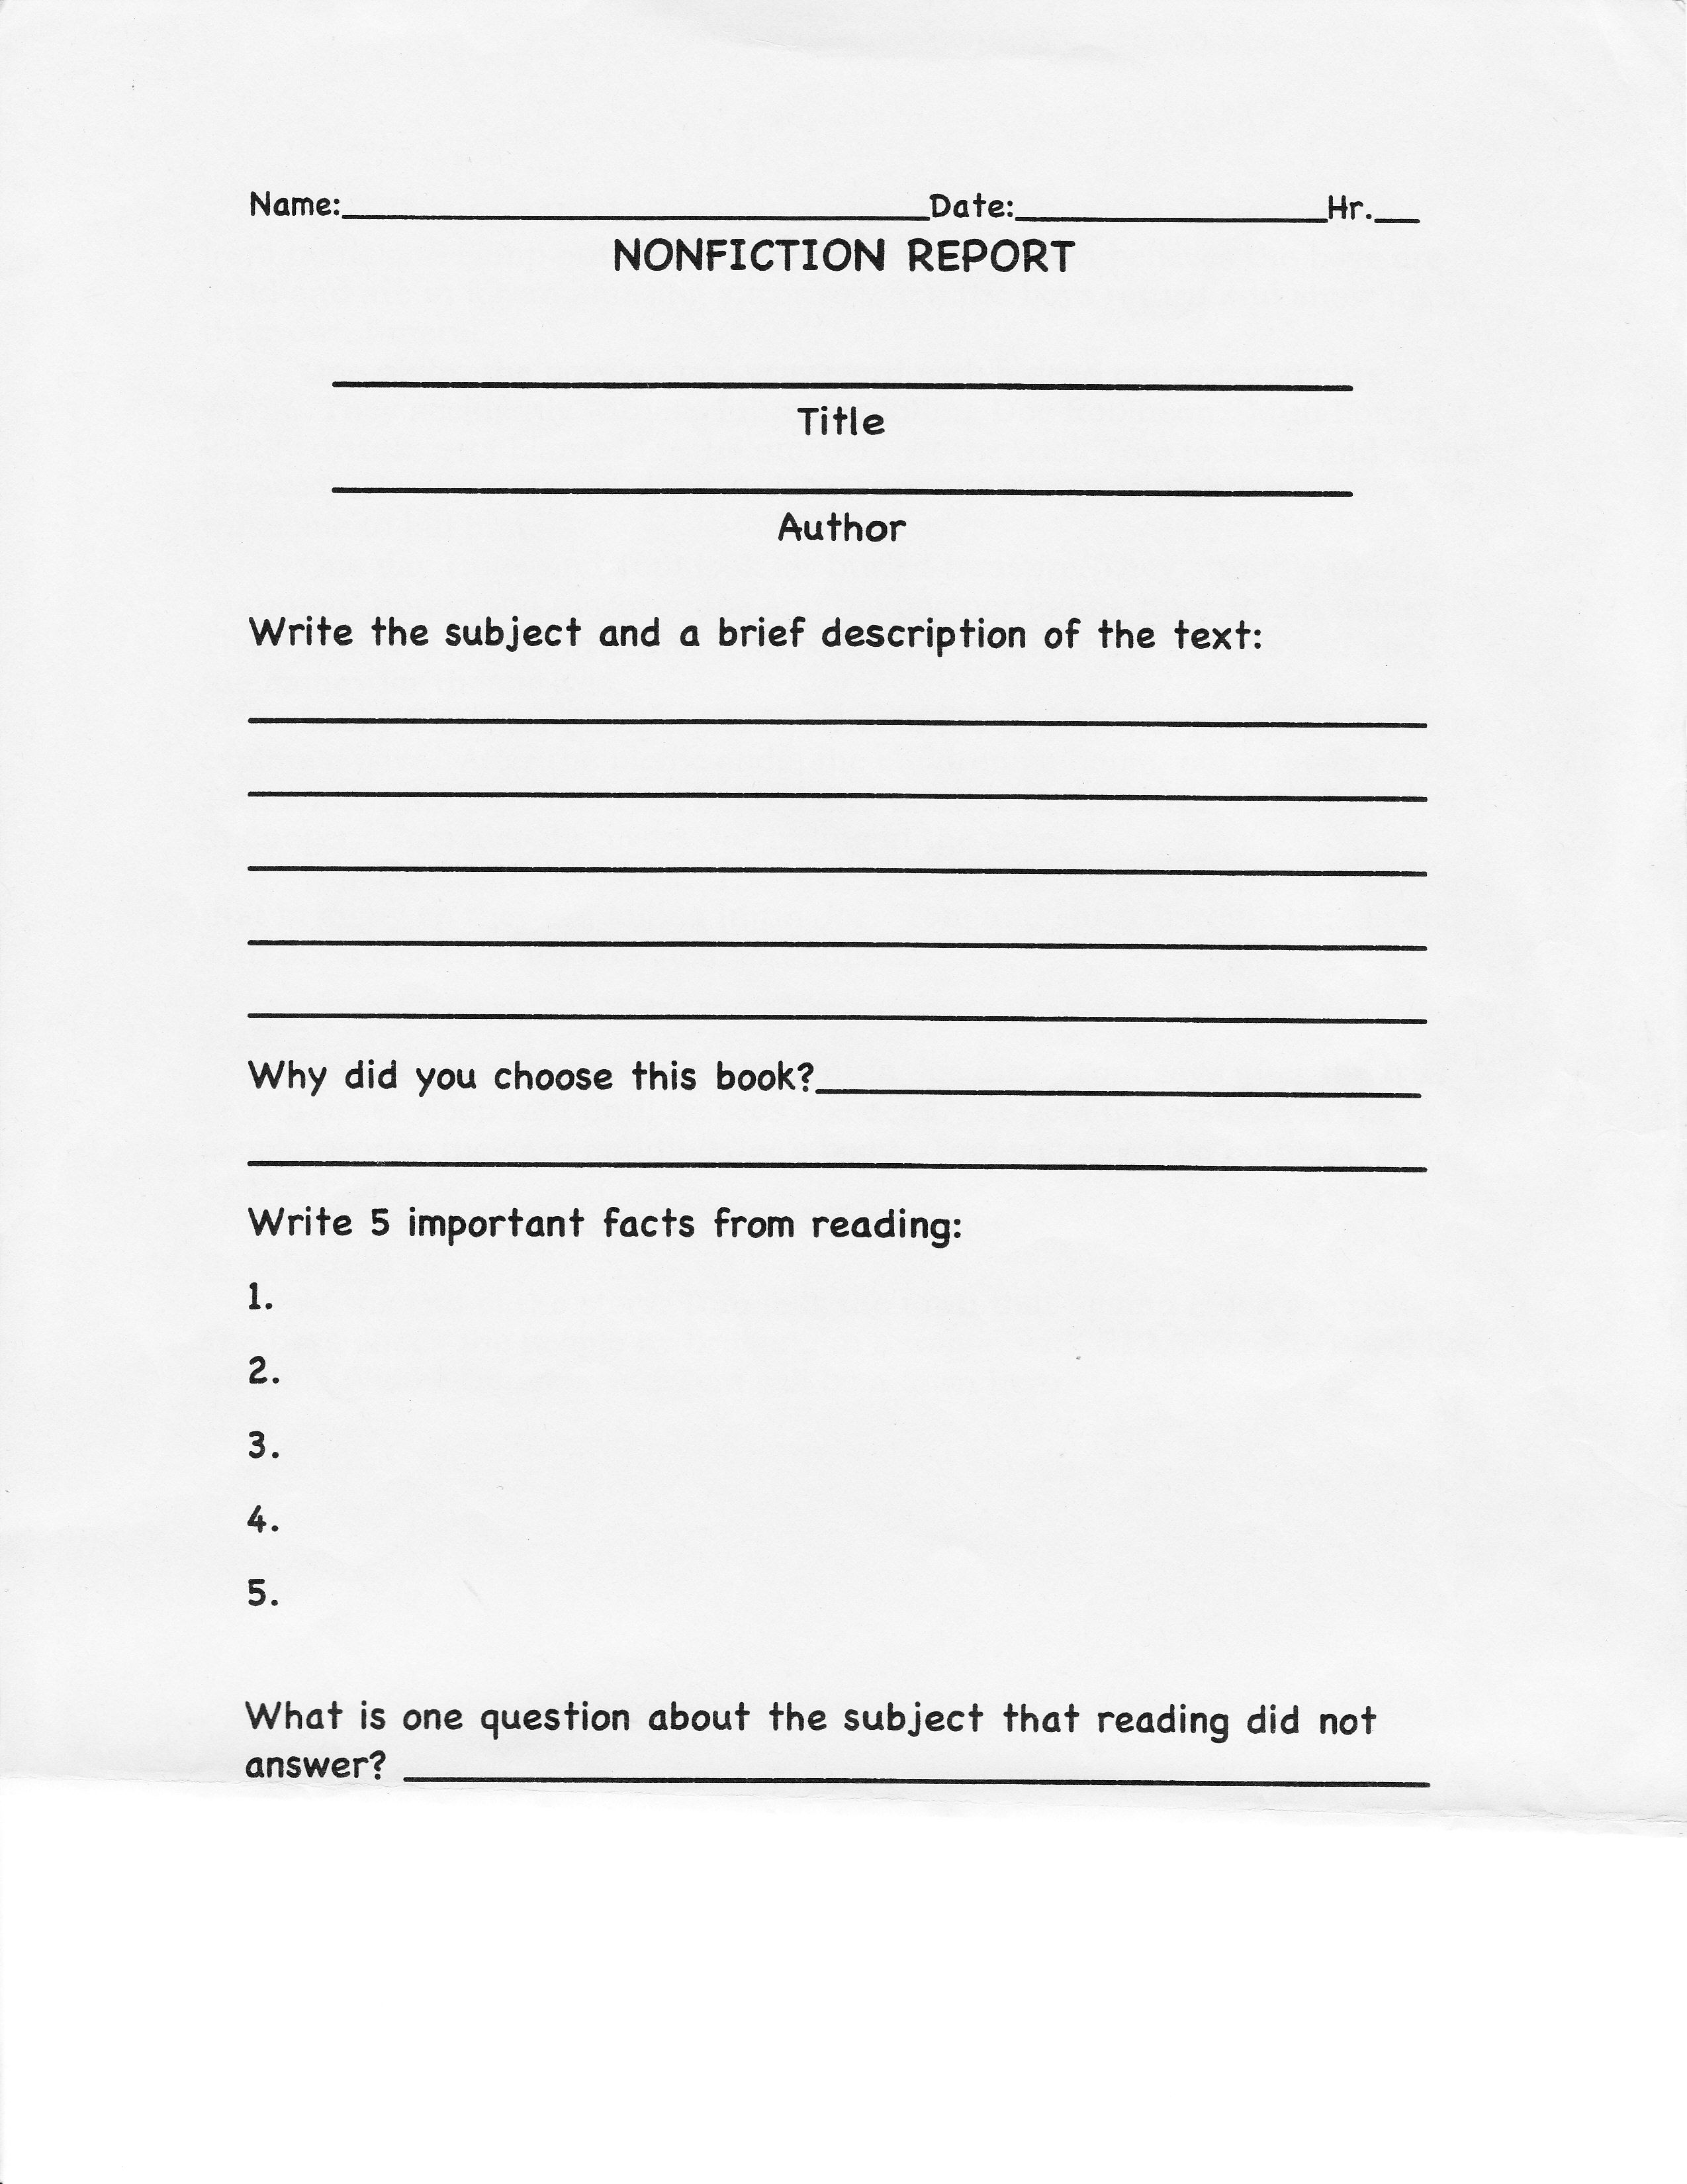 How, Why, And When To Write An Introduction For A Nonfiction Book